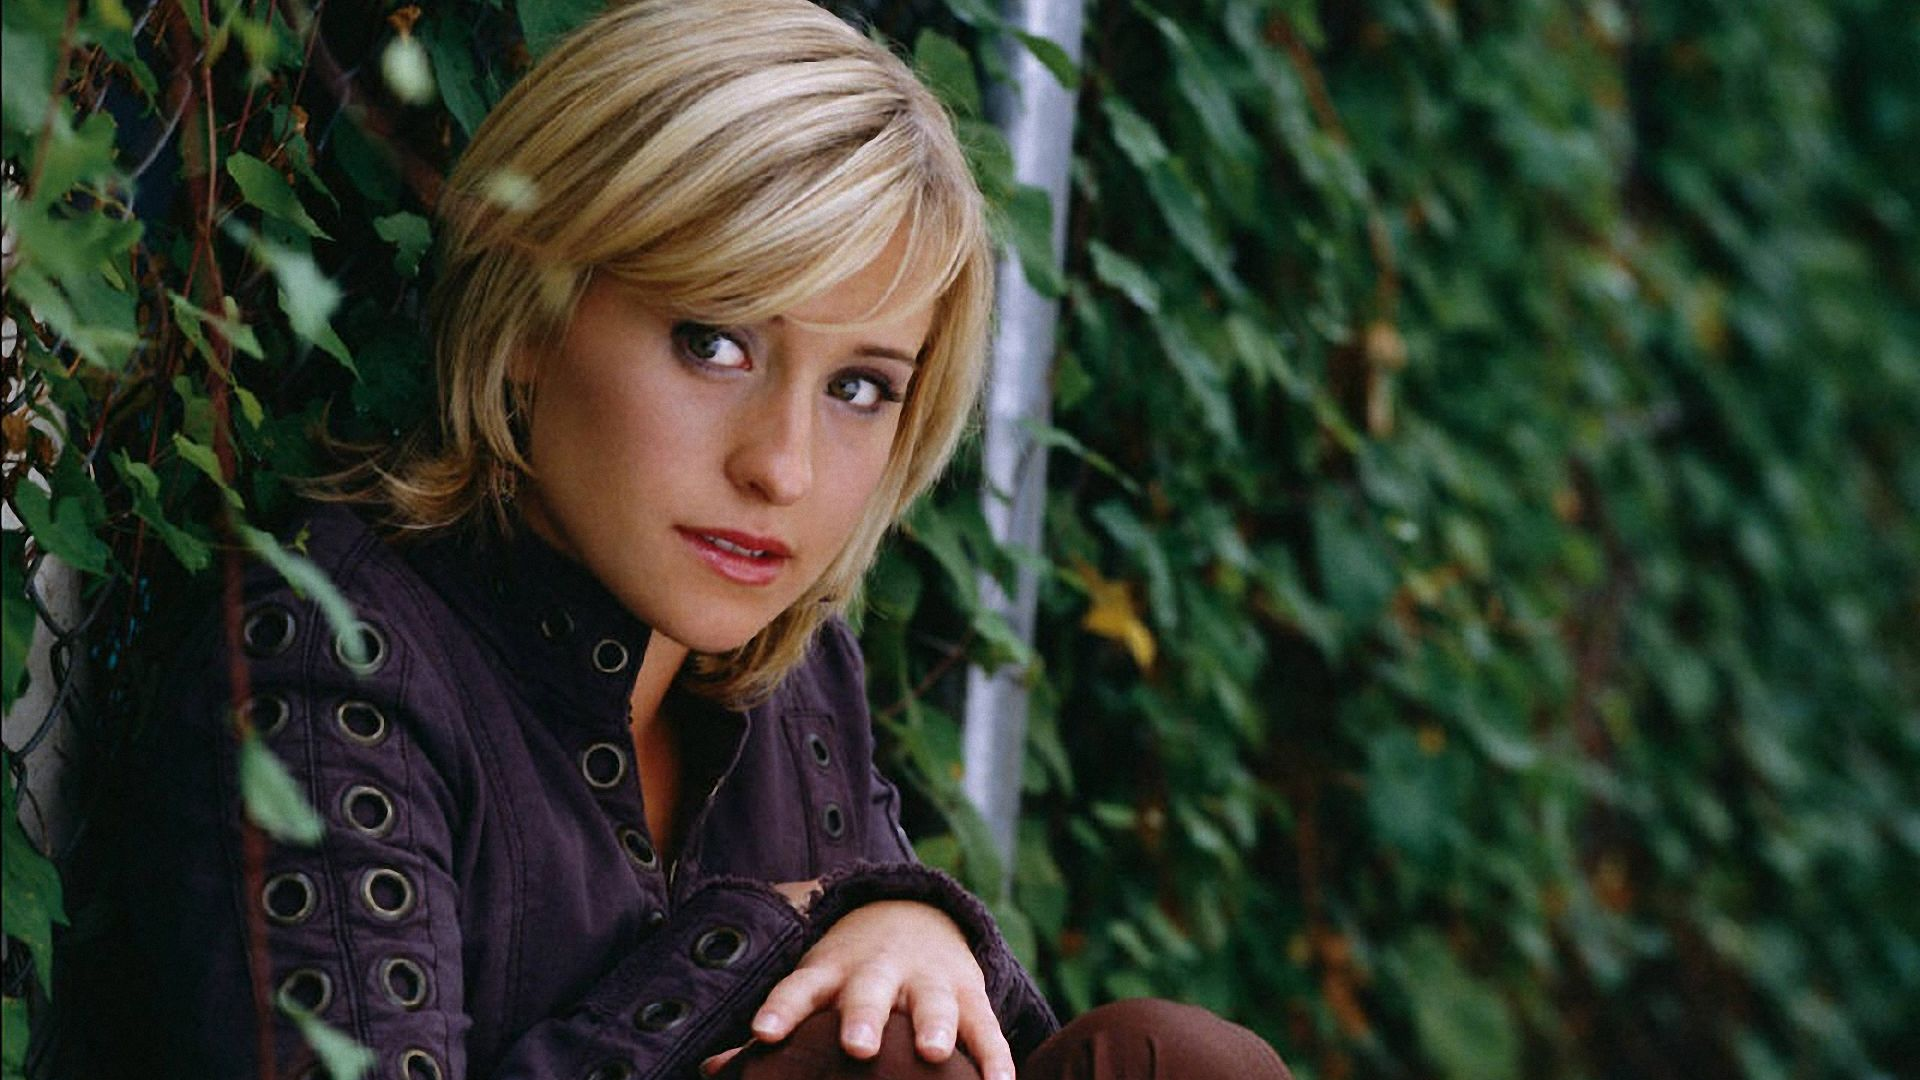 Allison Mack Wallpaper 1920x1080 Wallpapers 1920x1080 Wallpapers 1920x1080